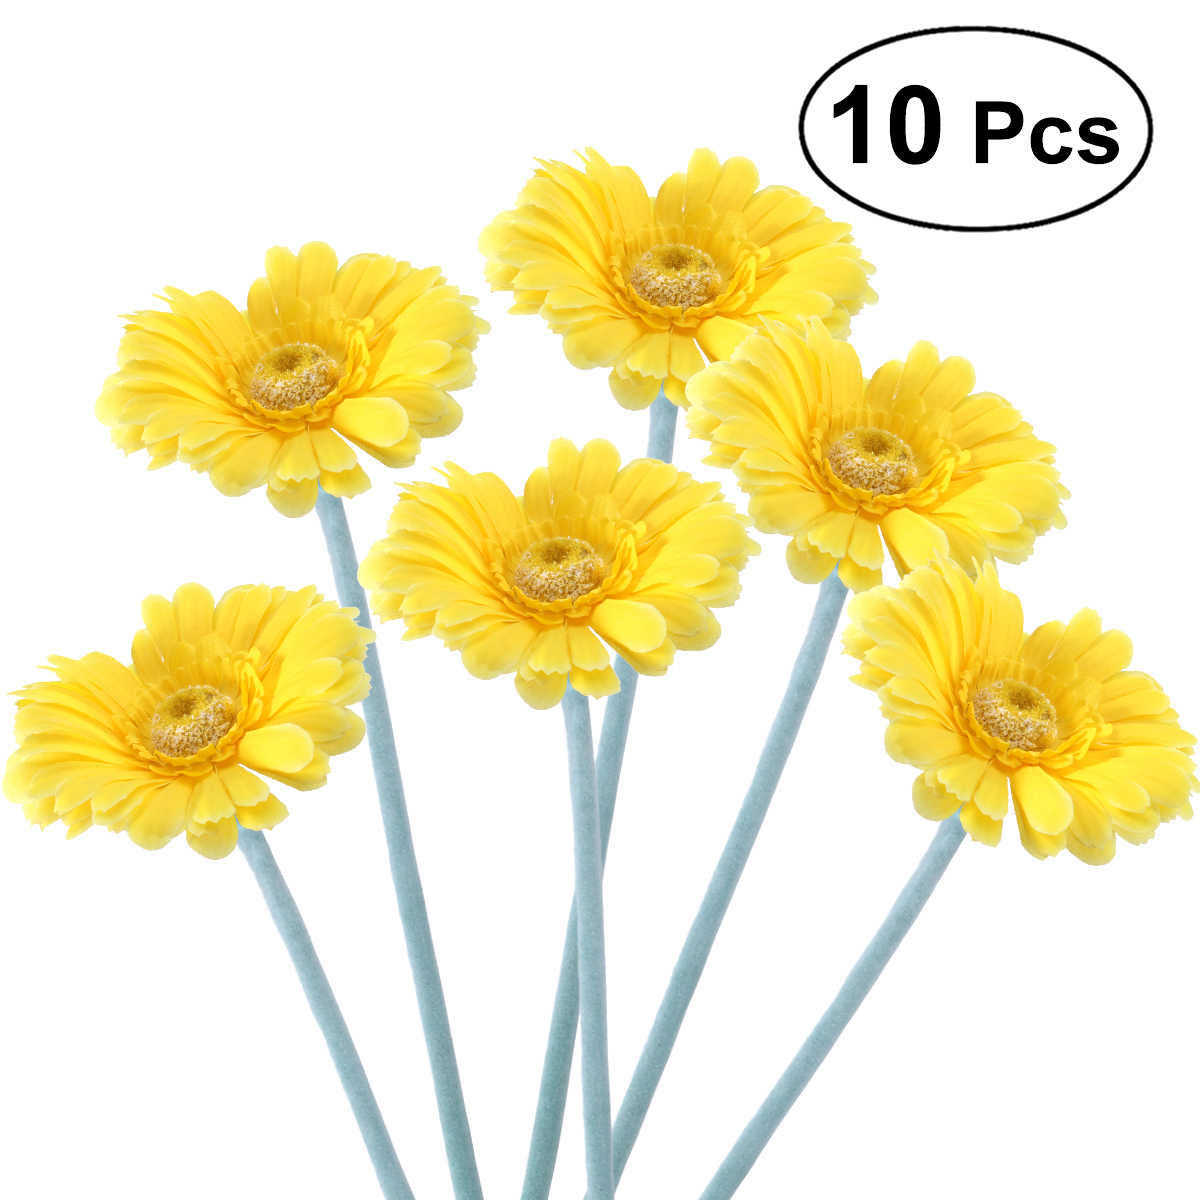 10pcs Artificial Sunflower Plastic Fake Gerbera Bunch for Home Garden Party Wedding Decorationm (Light Yellow)